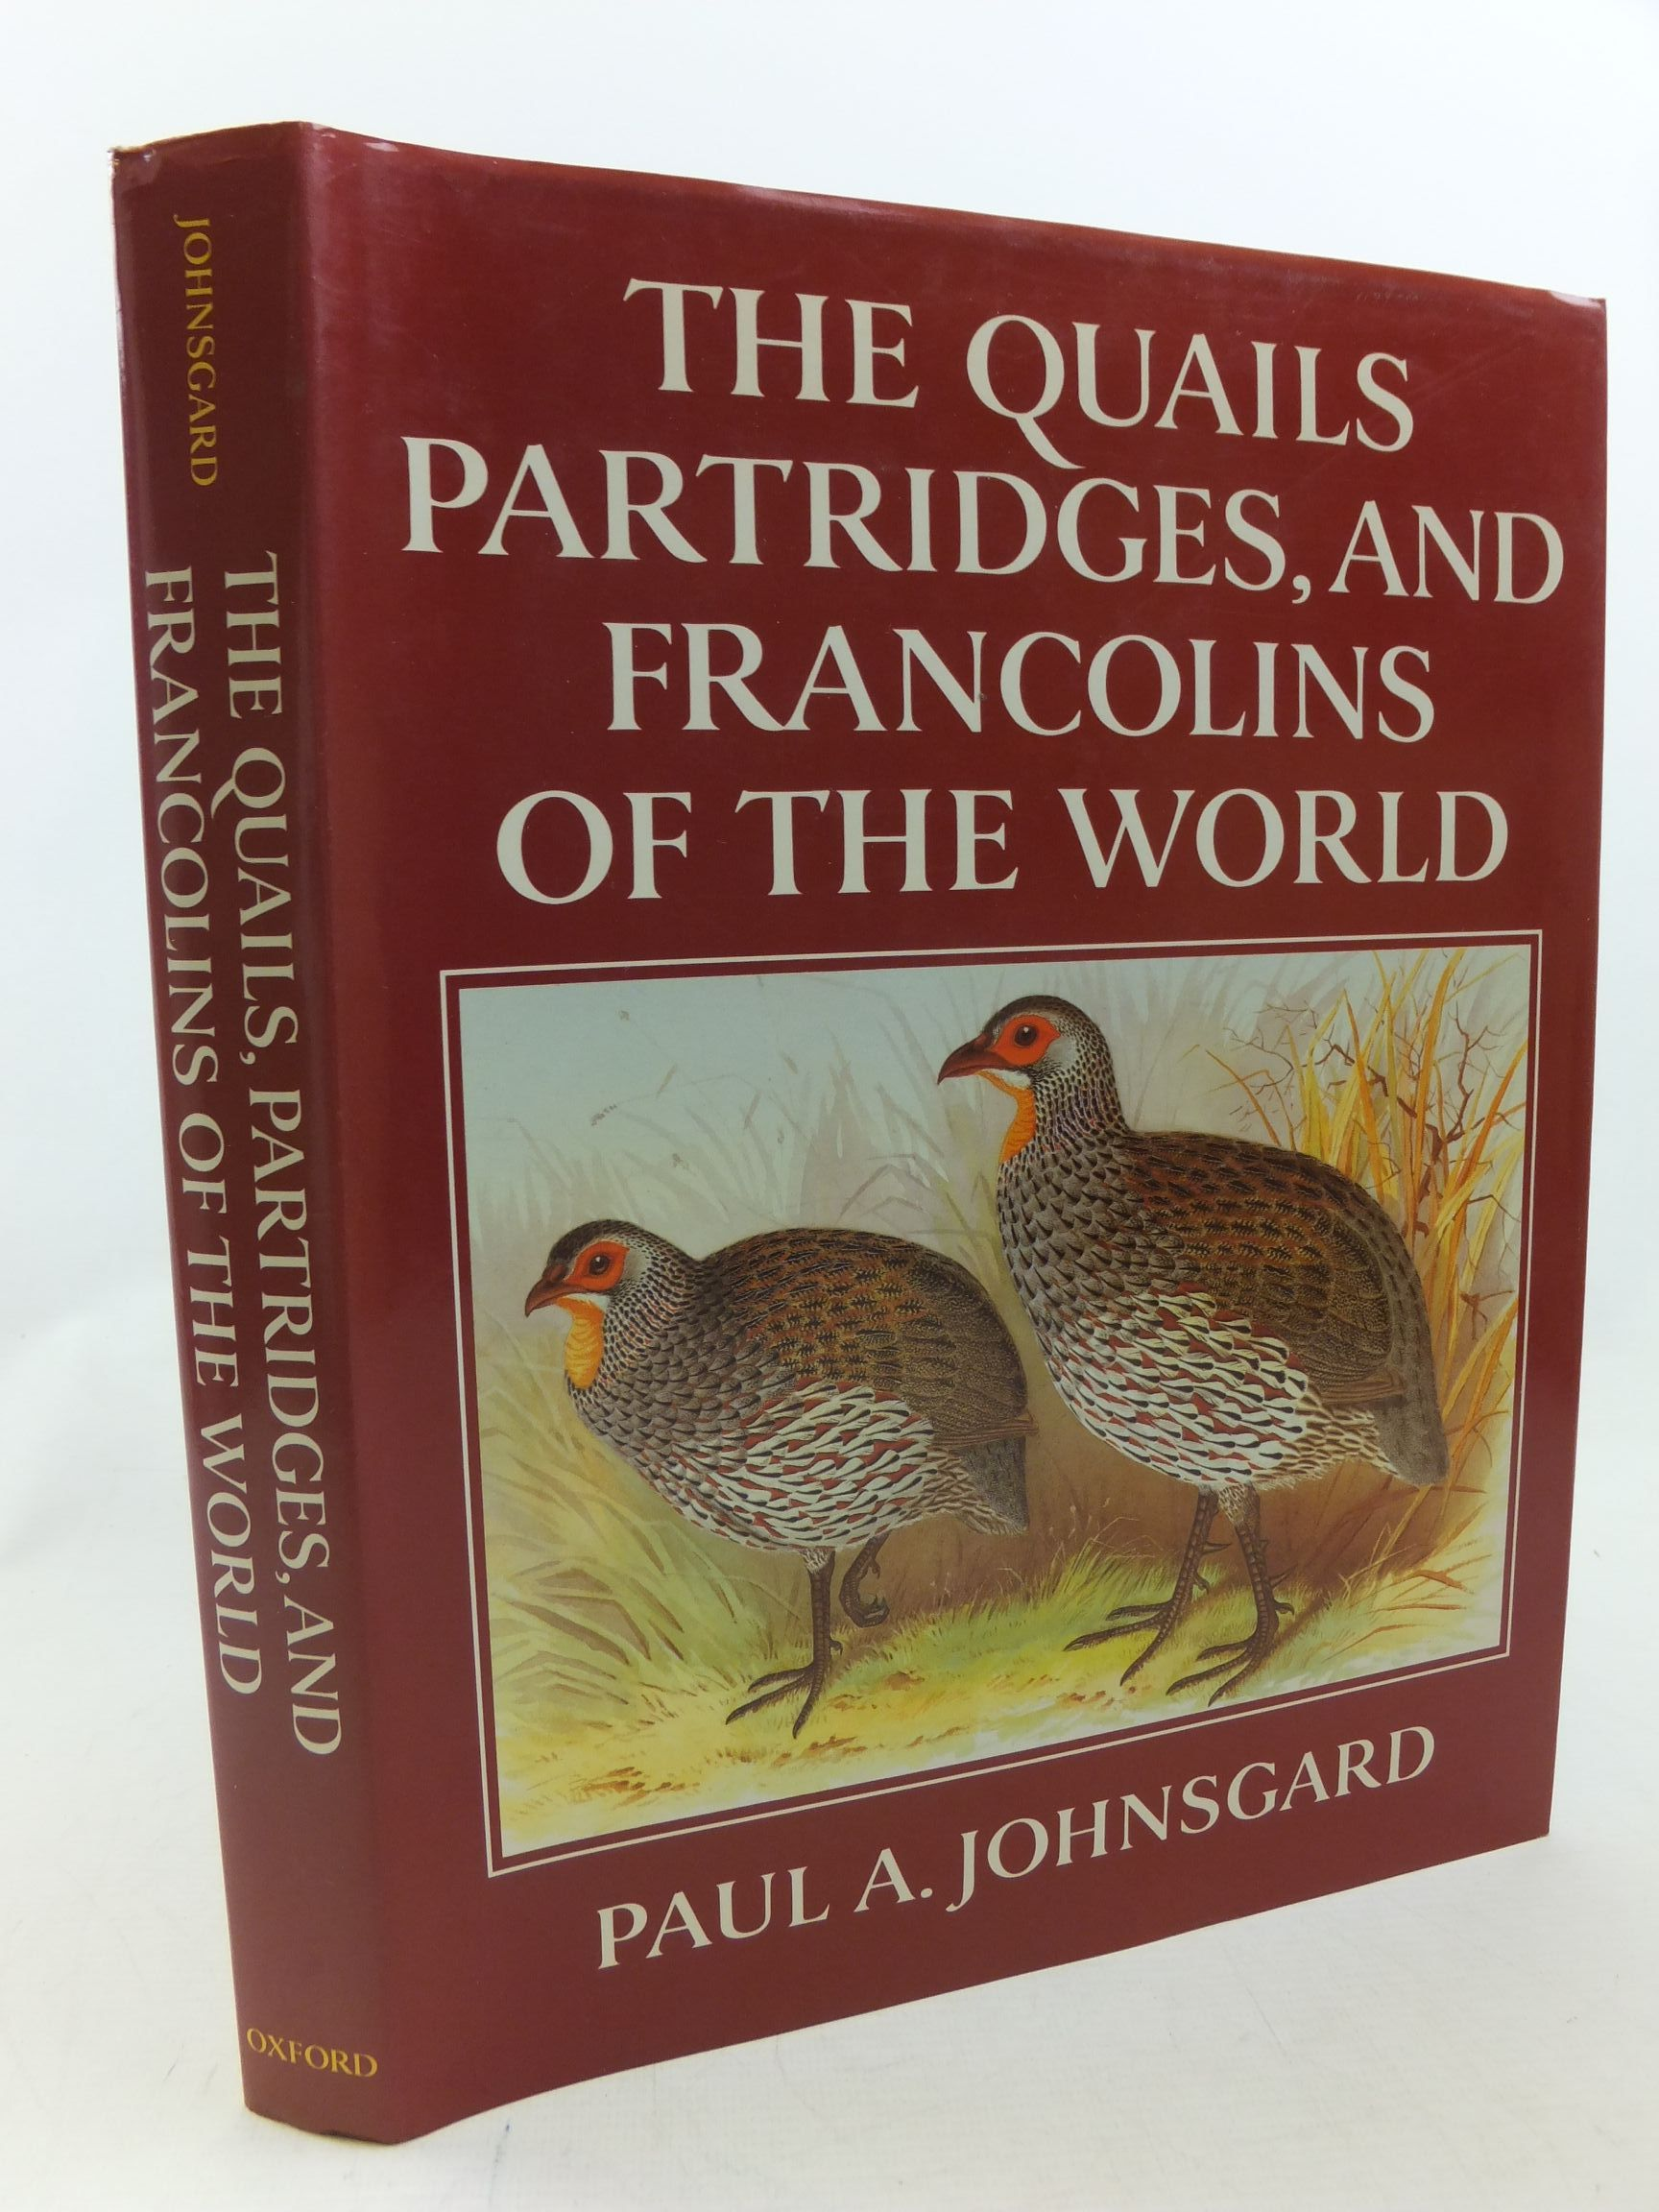 Photo of THE QUAILS PARTRIDGES, AND FRANCOLINS OF THE WORLD written by Johnsgard, Paul A. illustrated by Jones, Henry published by Oxford University Press (STOCK CODE: 2114347)  for sale by Stella & Rose's Books